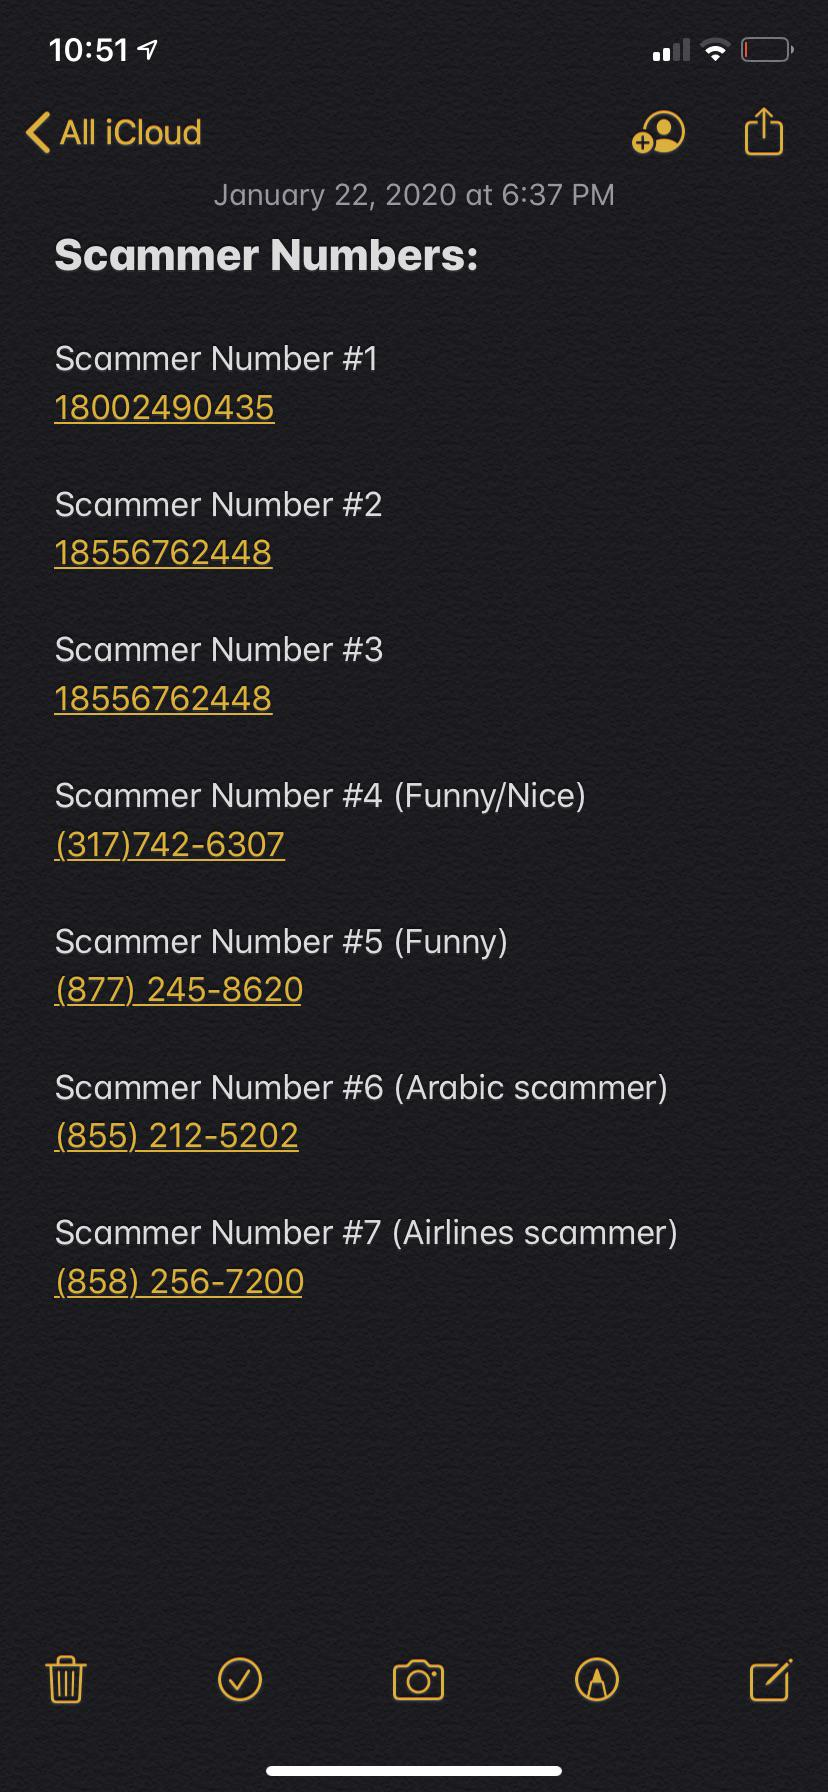 Fake Phone Number Funny Hotline : phone, number, funny, hotline, Prank, Them!, These, Numbers, Working!, ScamNumbers